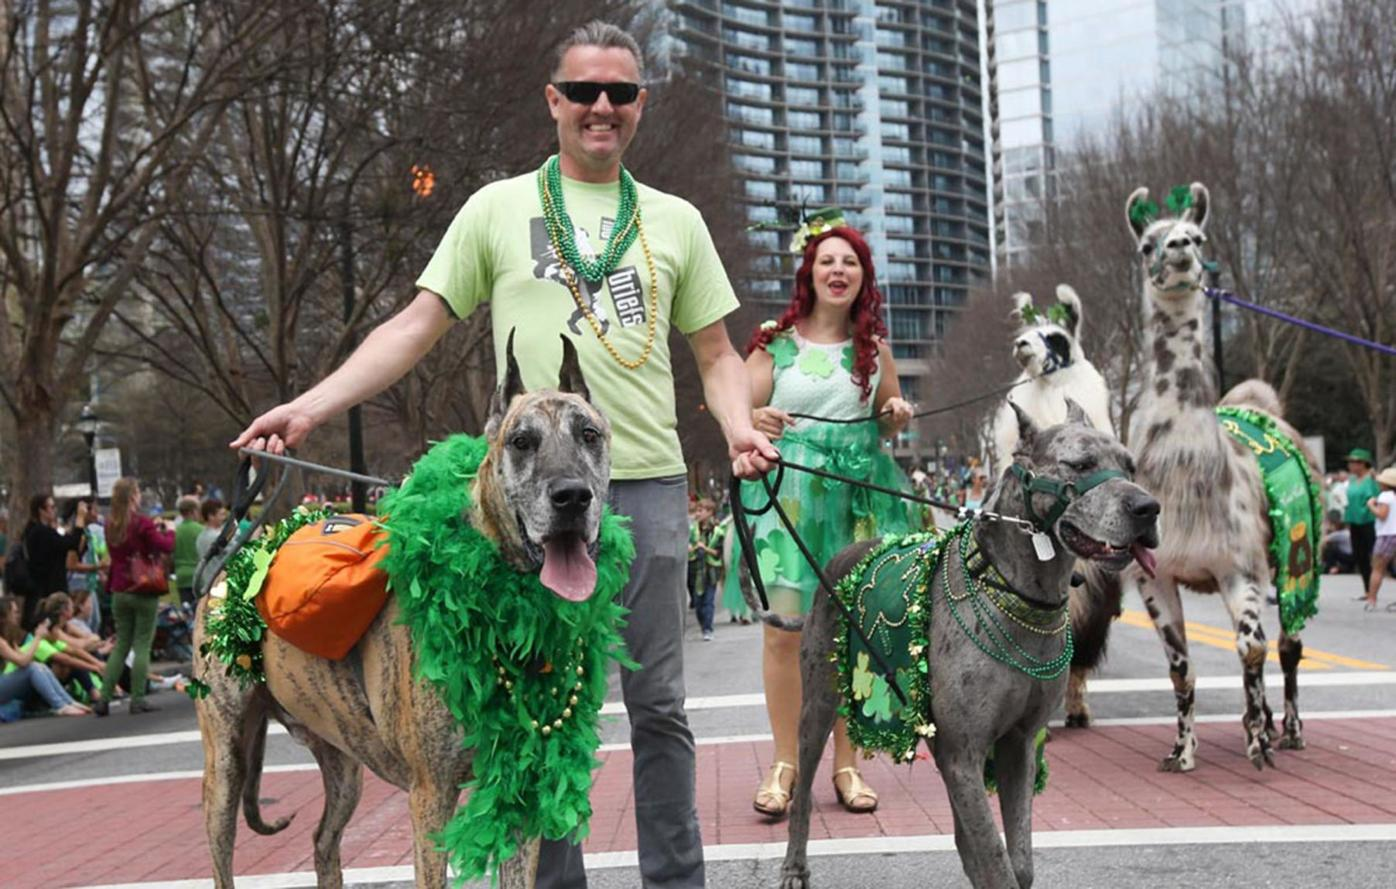 031319_MNS_St_Patricks_Day_002 parade participants with dogs and llamas